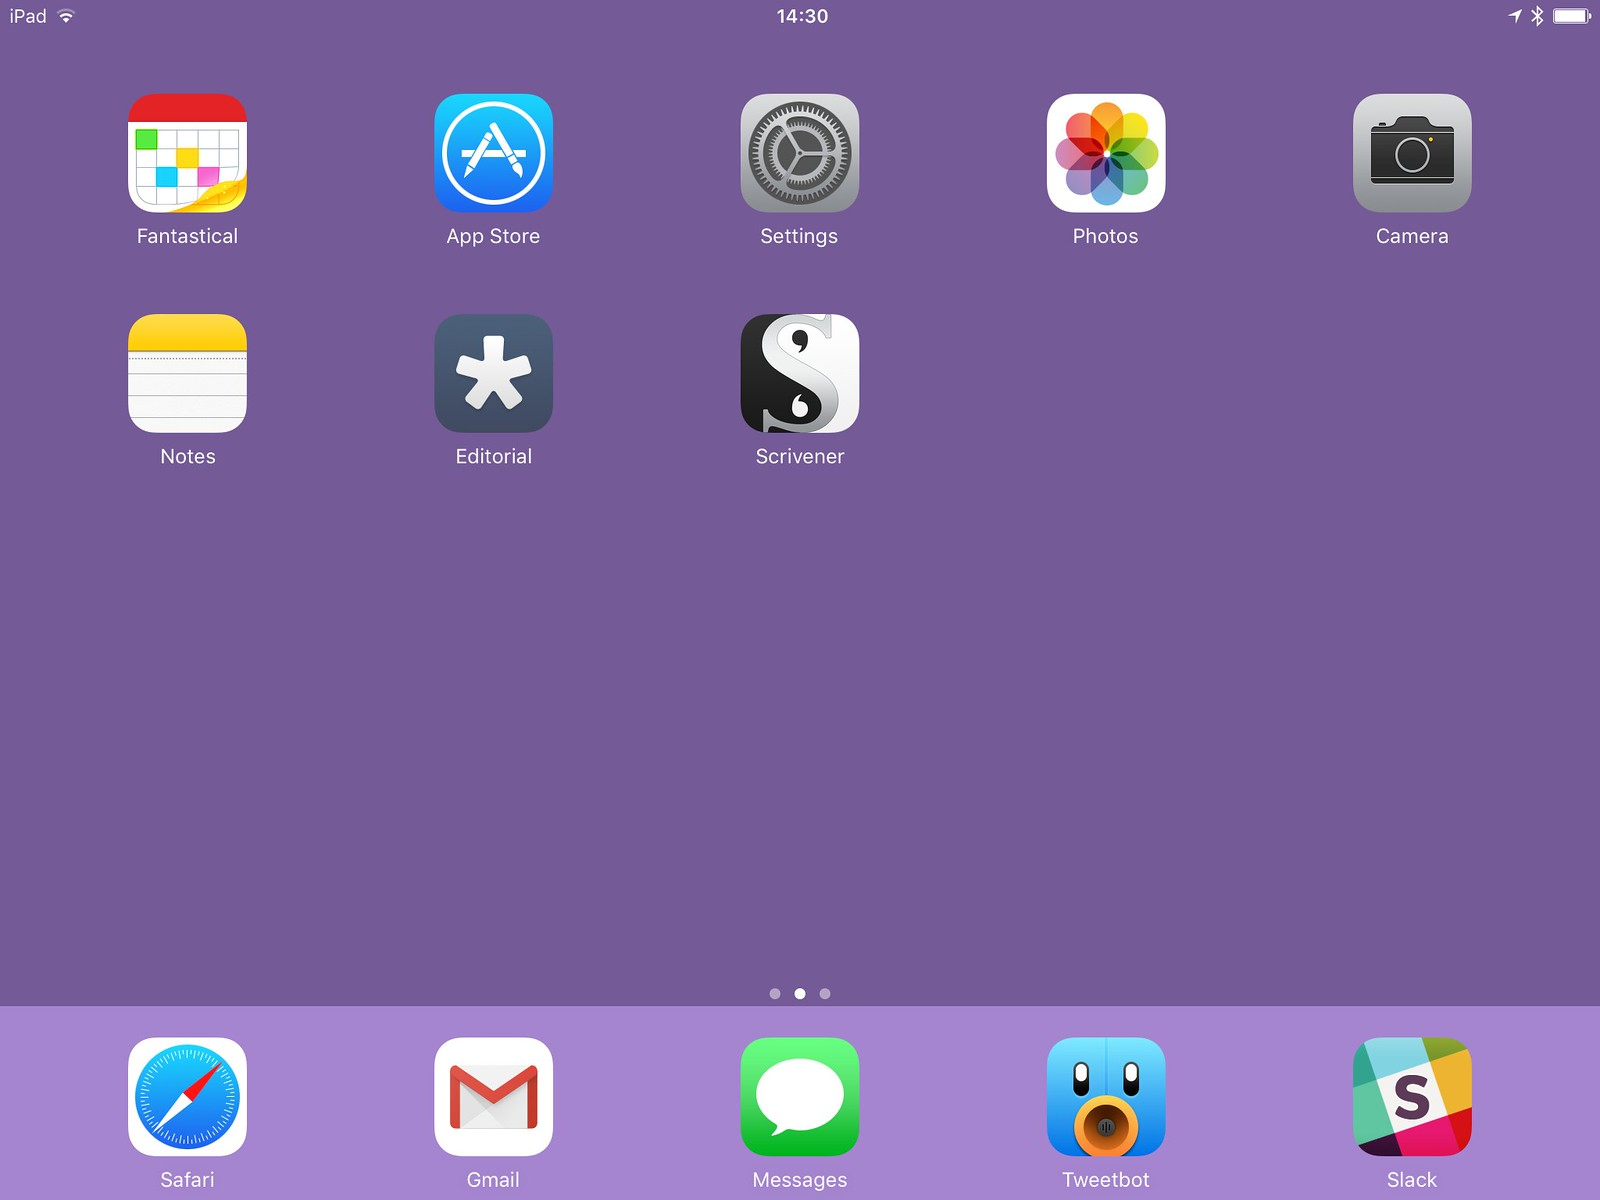 My iPad's primary Home screen